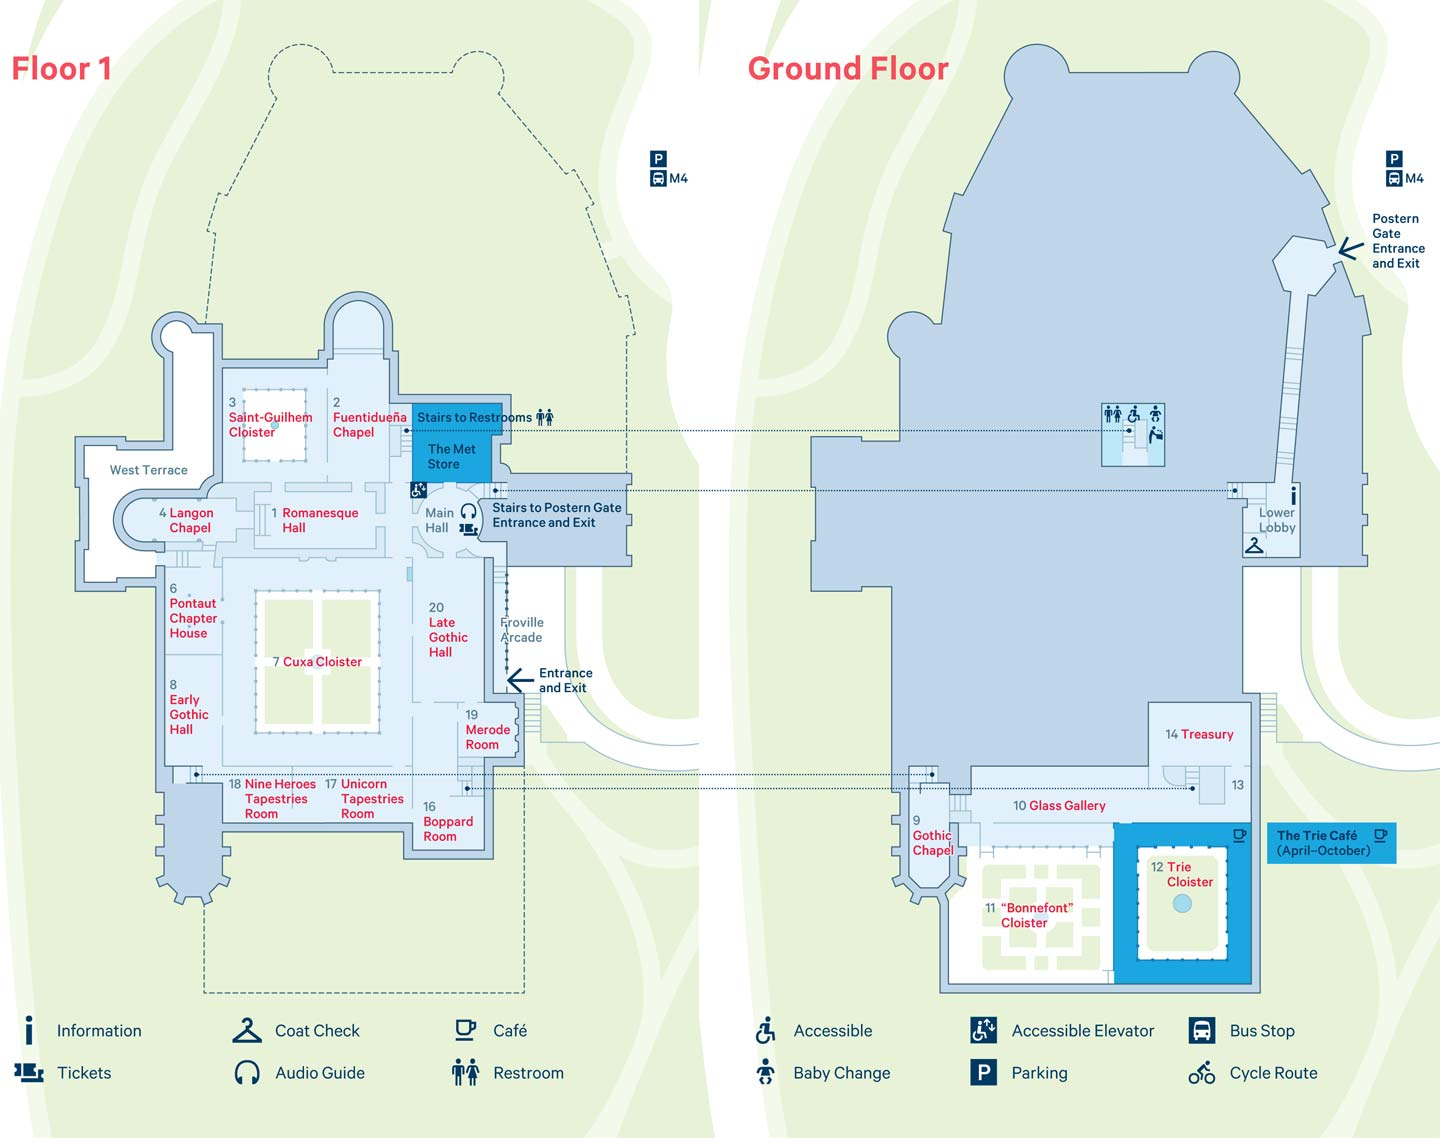 map of the met cloisters  floor  and ground floor. the met cloisters  the metropolitan museum of art